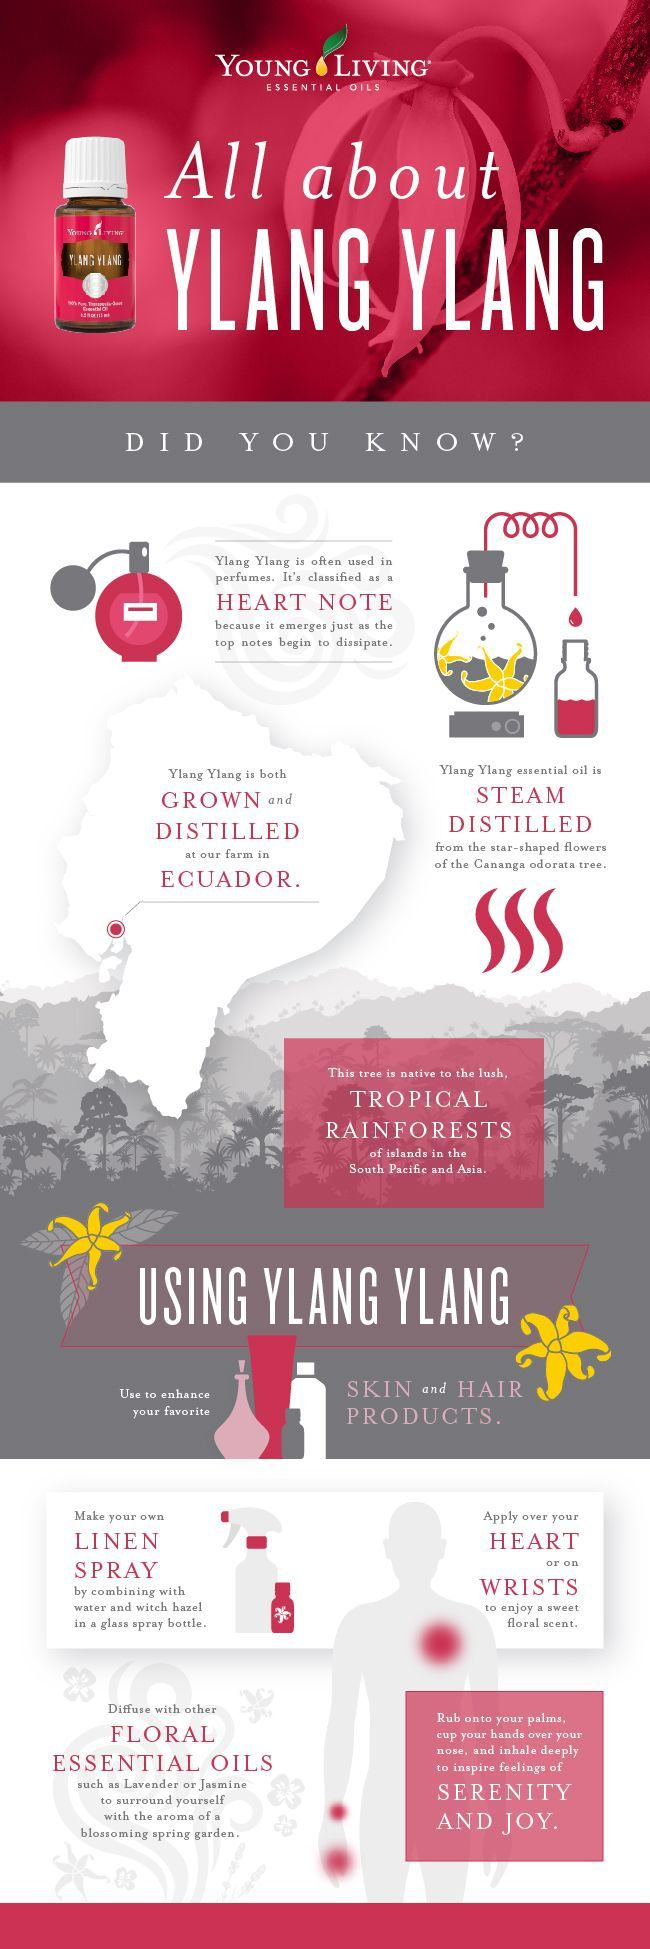 Click to see all of our recipes featuring Young Living's Ylang Ylang essential oils!   RecipeswithEssentialOils.com